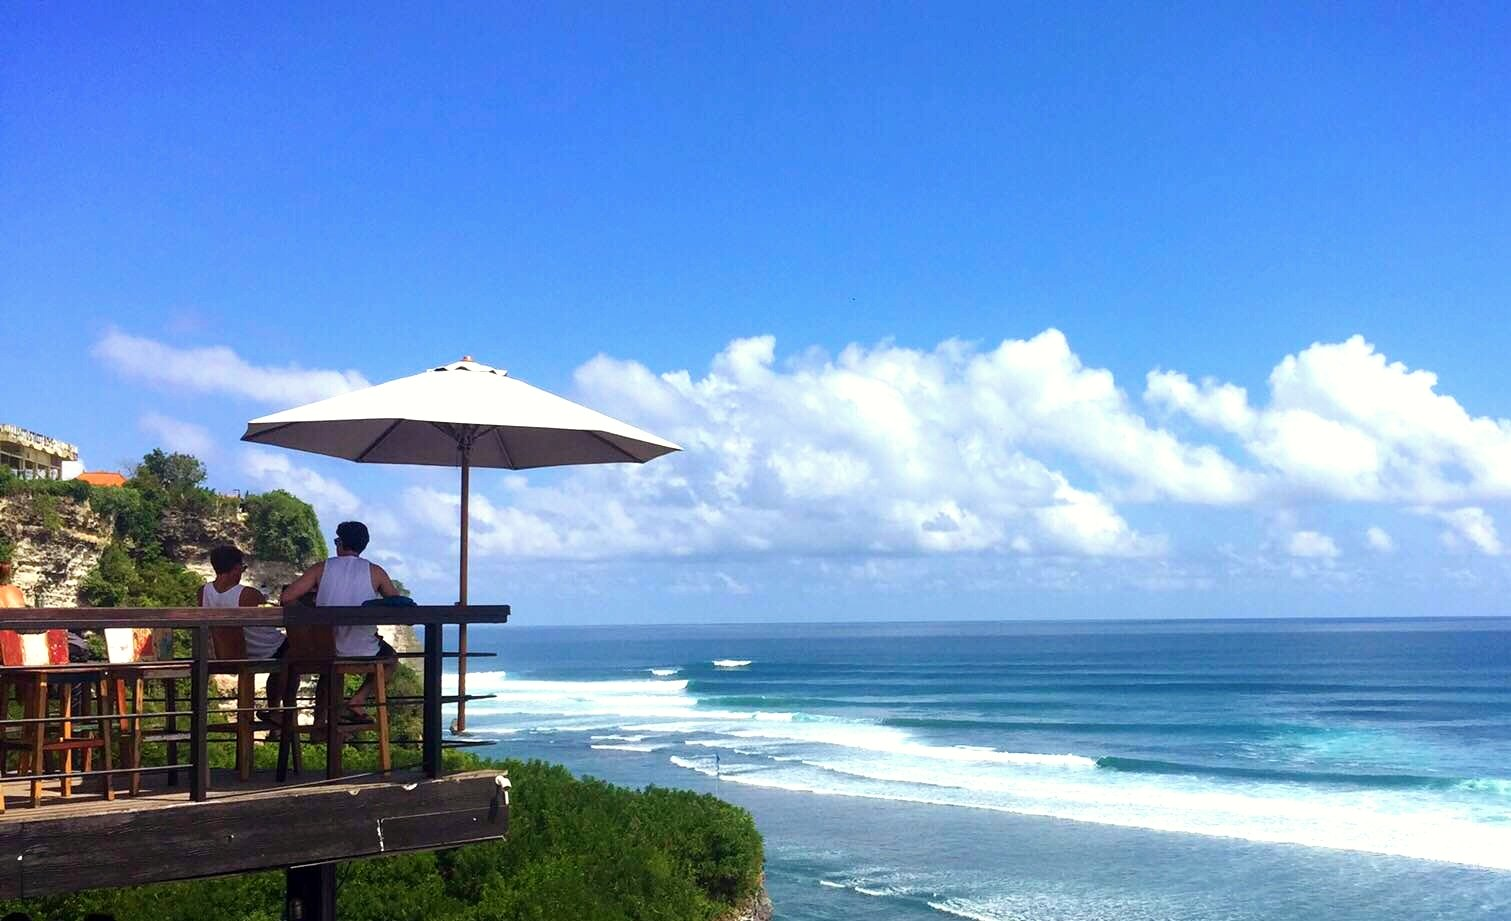 bali-destination-review-7